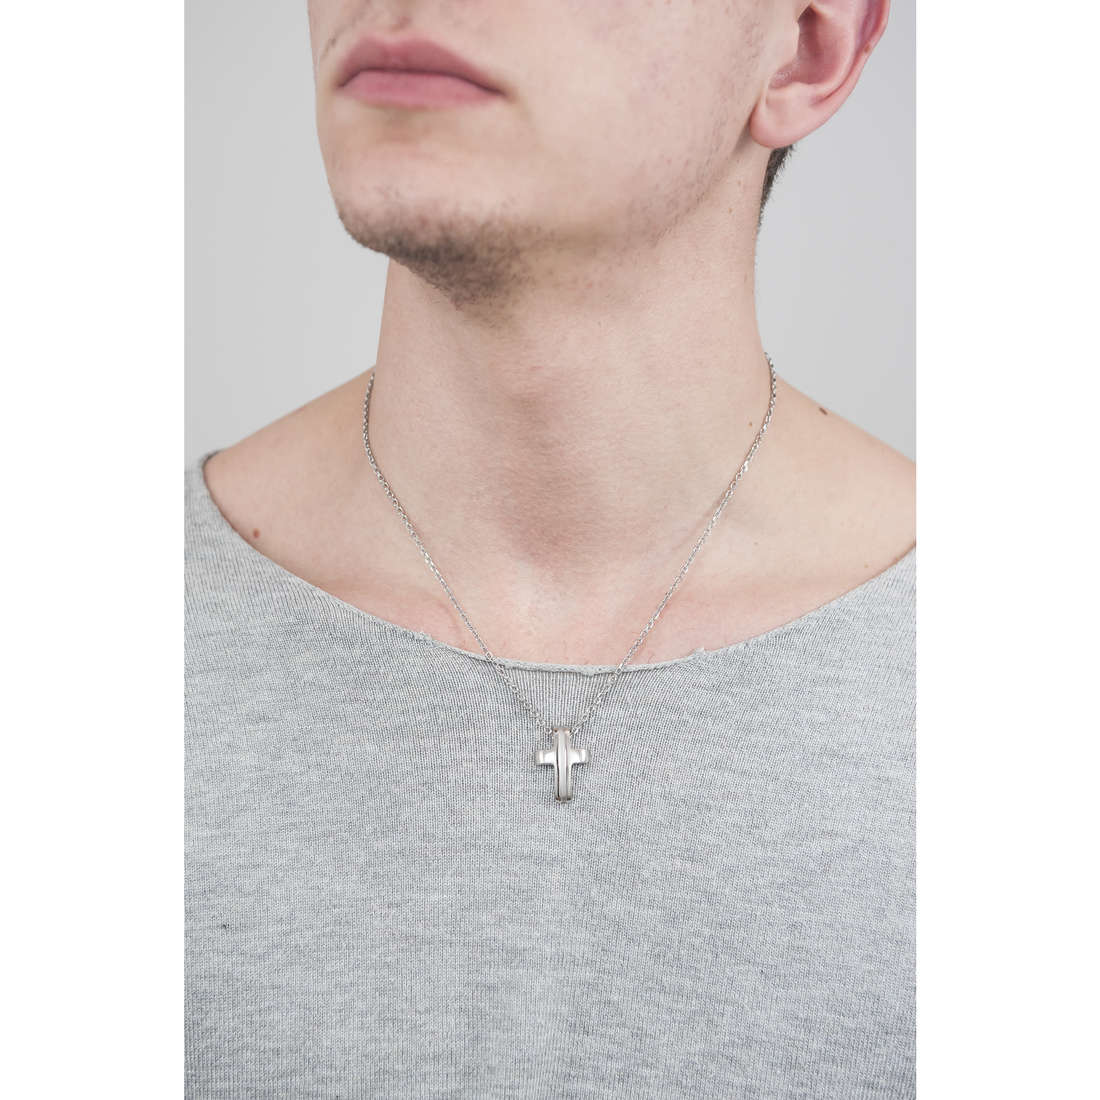 Brosway necklaces Medieval man BMV01 indosso